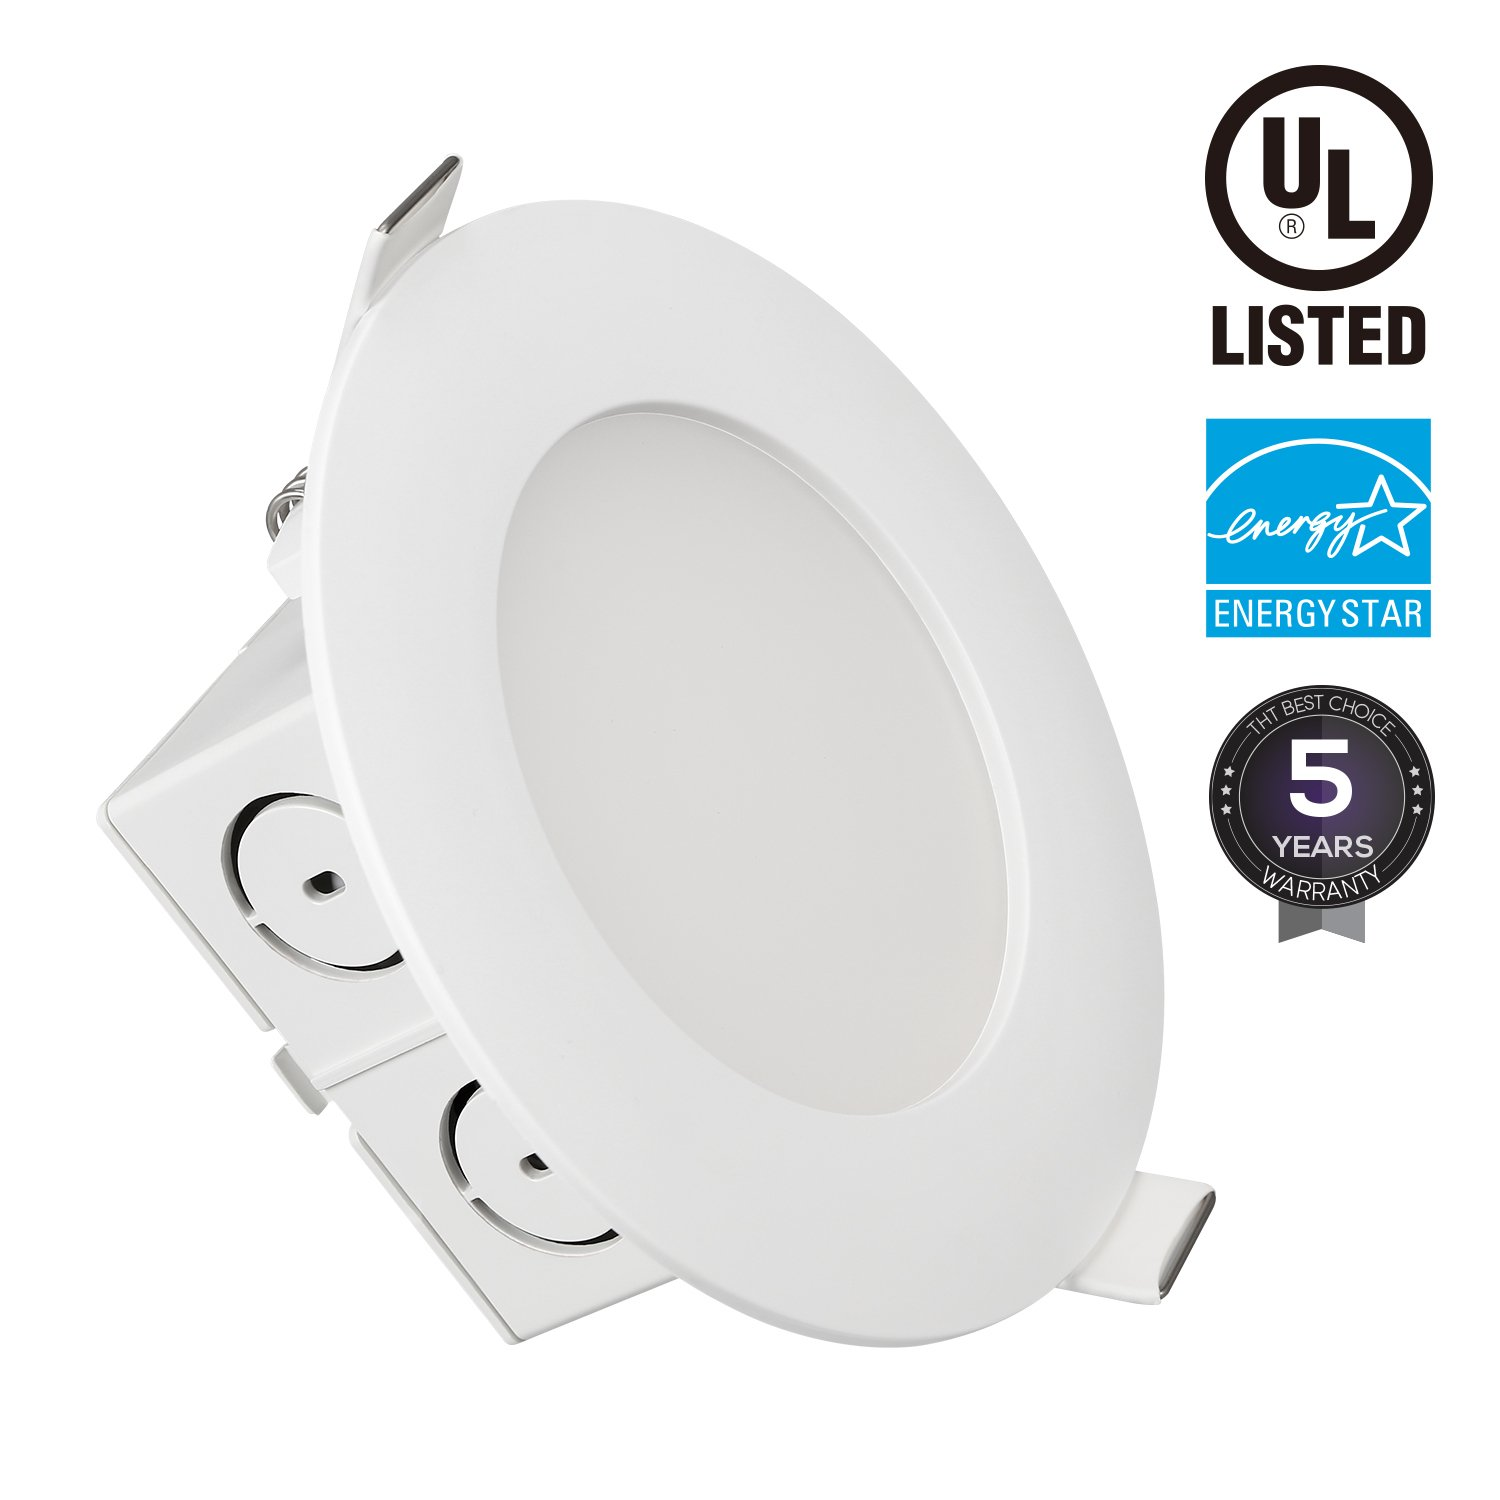 TORCHSTAR 9W 4 inch Slim Recessed Ceiling Light with Junction Box, Dimmable Airtight Downlight, 65W Equivalent, UL & Energy Star Certified, 650lm, 3000K Warm White